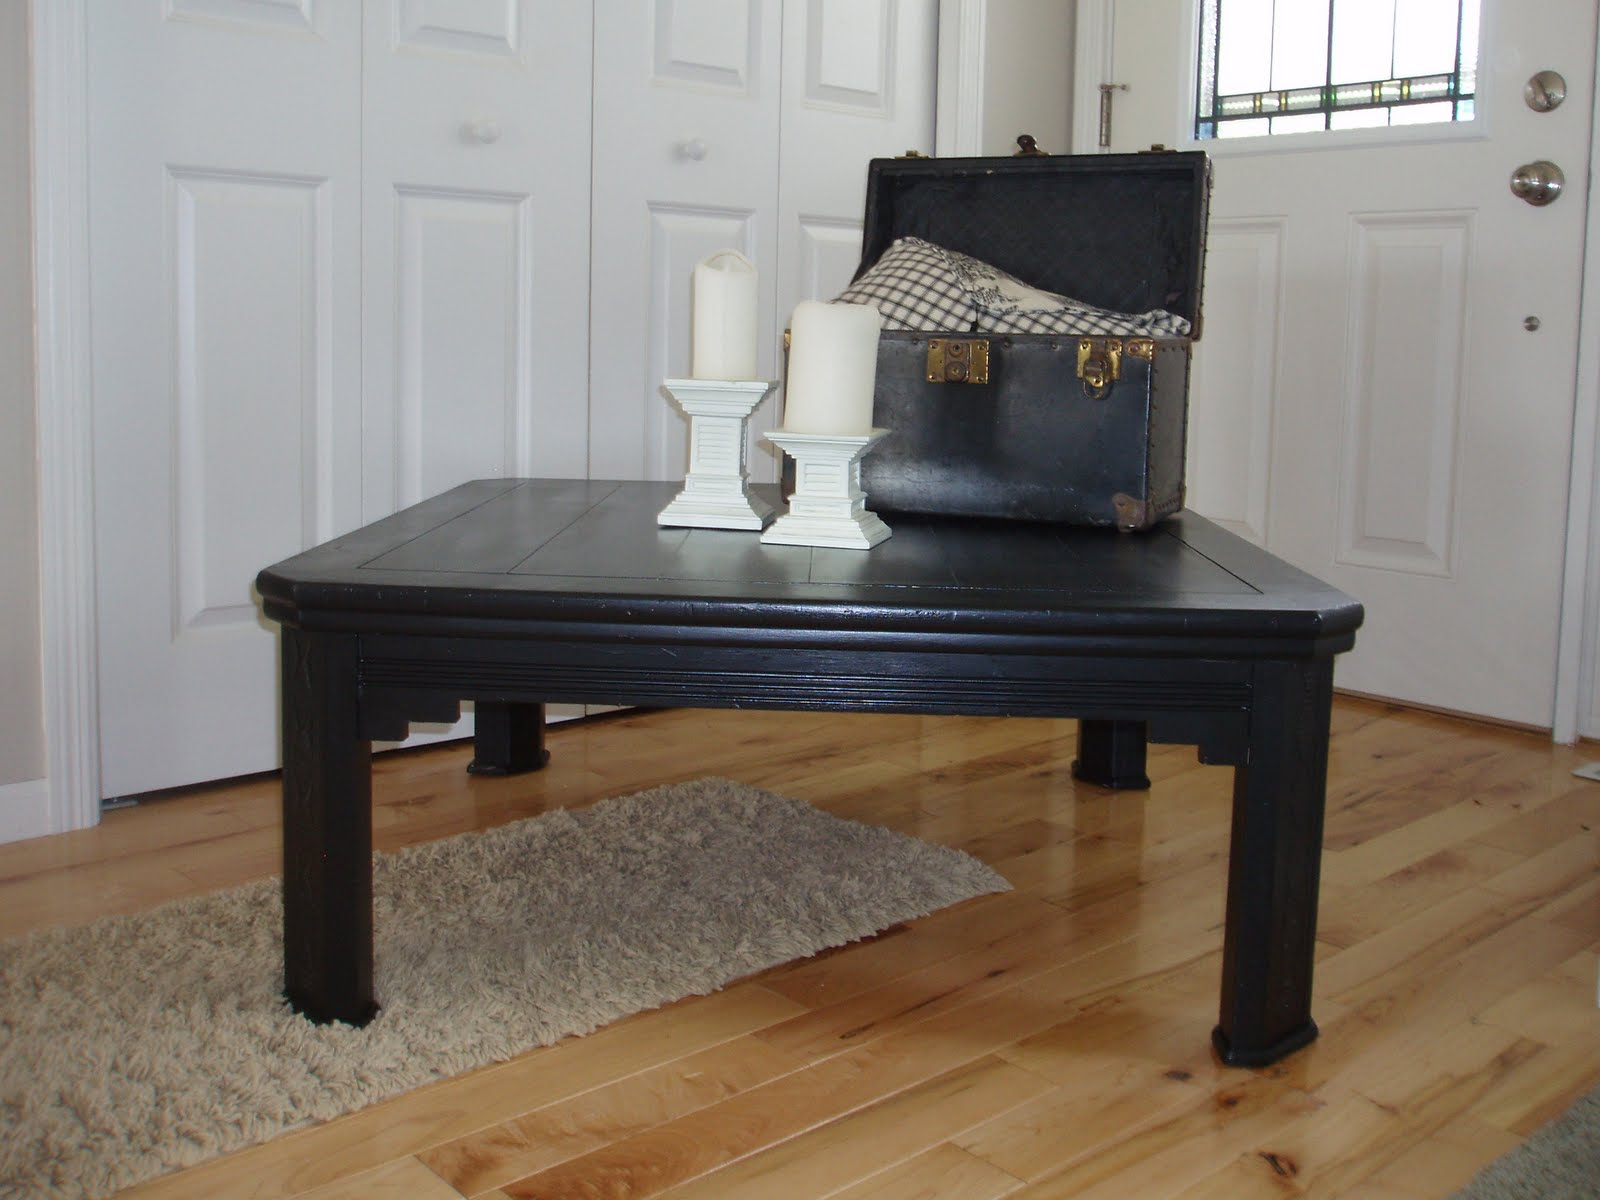 Red Barn Recycled: SOLD: Black Square Coffee Table